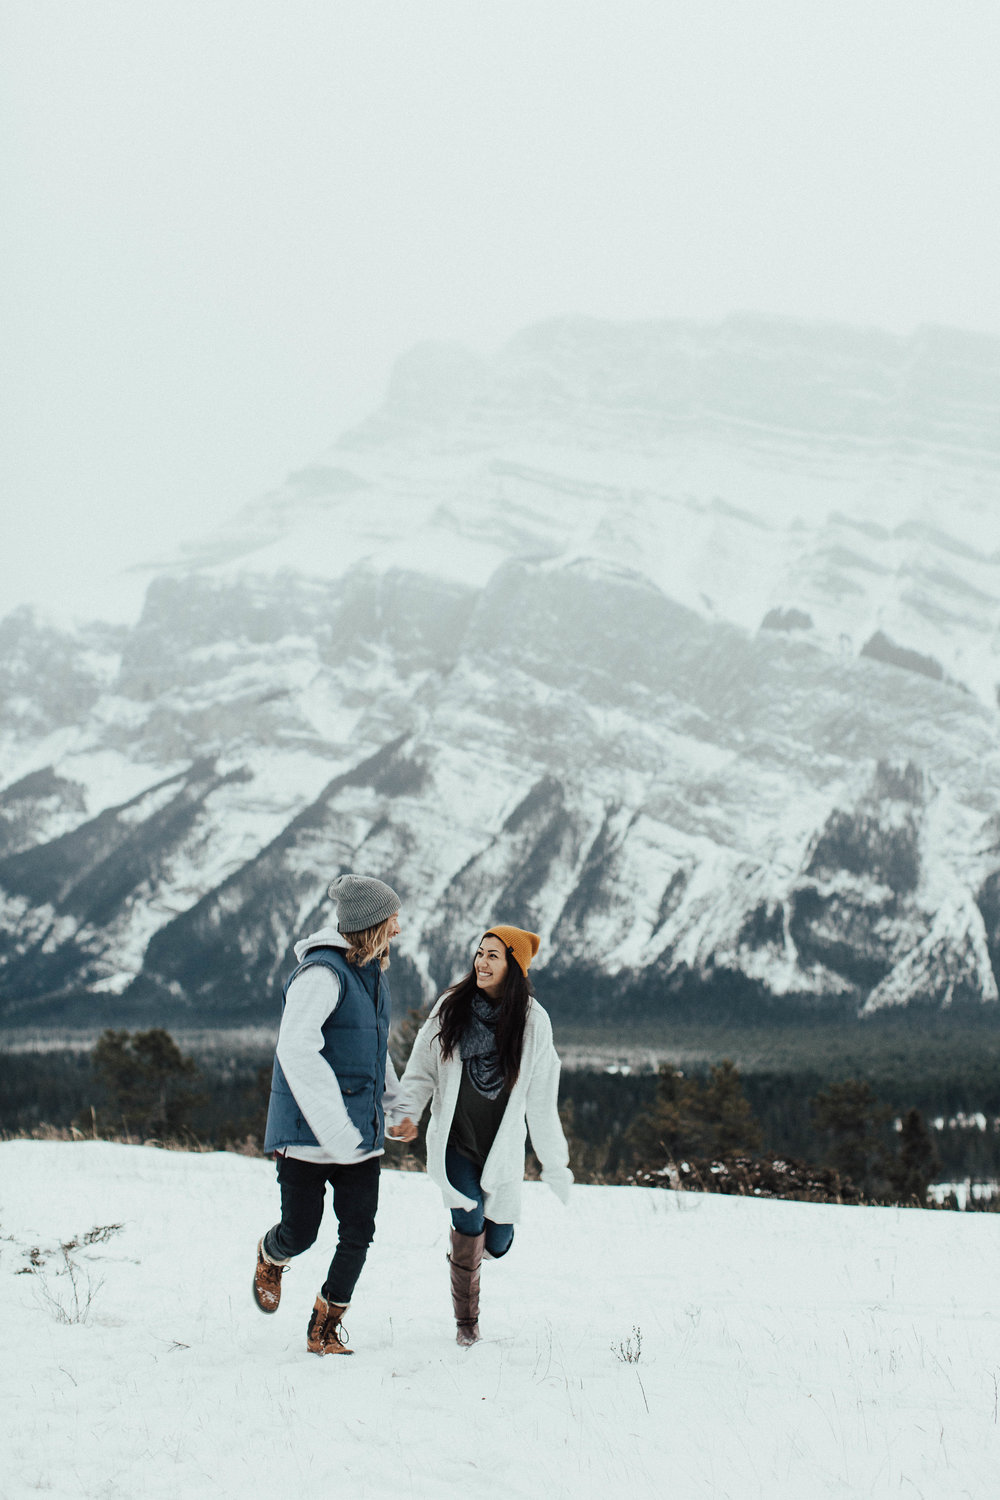 Banff Engagement Photographer - Winter Mountain Adventure Engagement Session - Michelle Larmand Photography-011